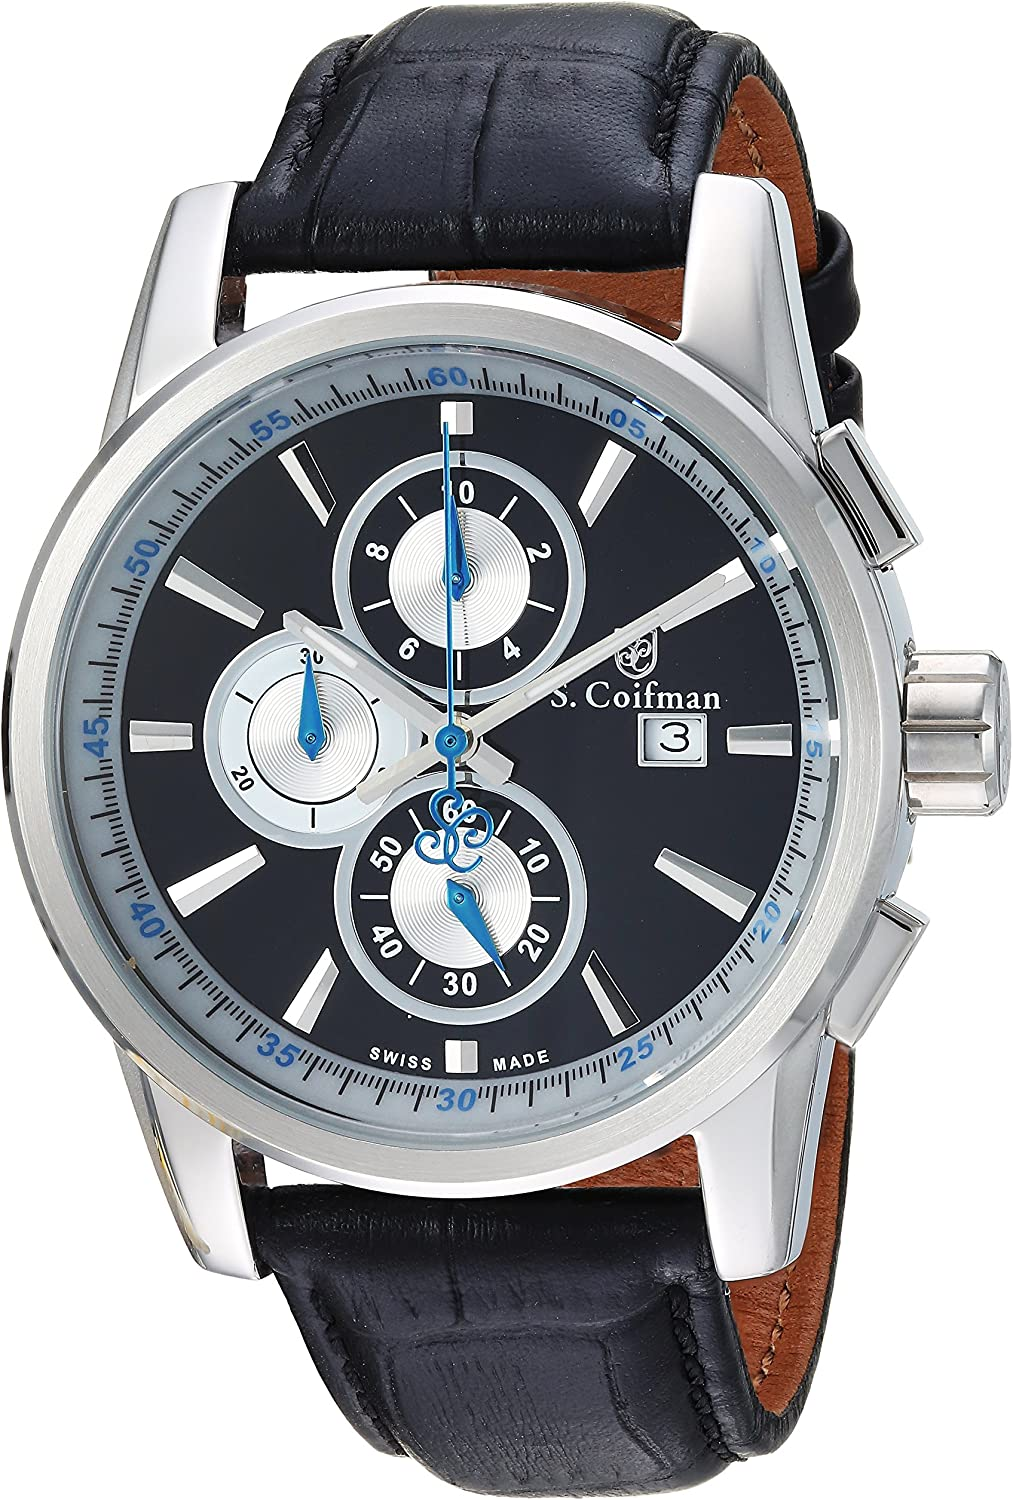 S. Coifman Men s Heritage Stainless Steel Quartz Watch with Leather Calfskin Strap, Black, 22 Model SC0251